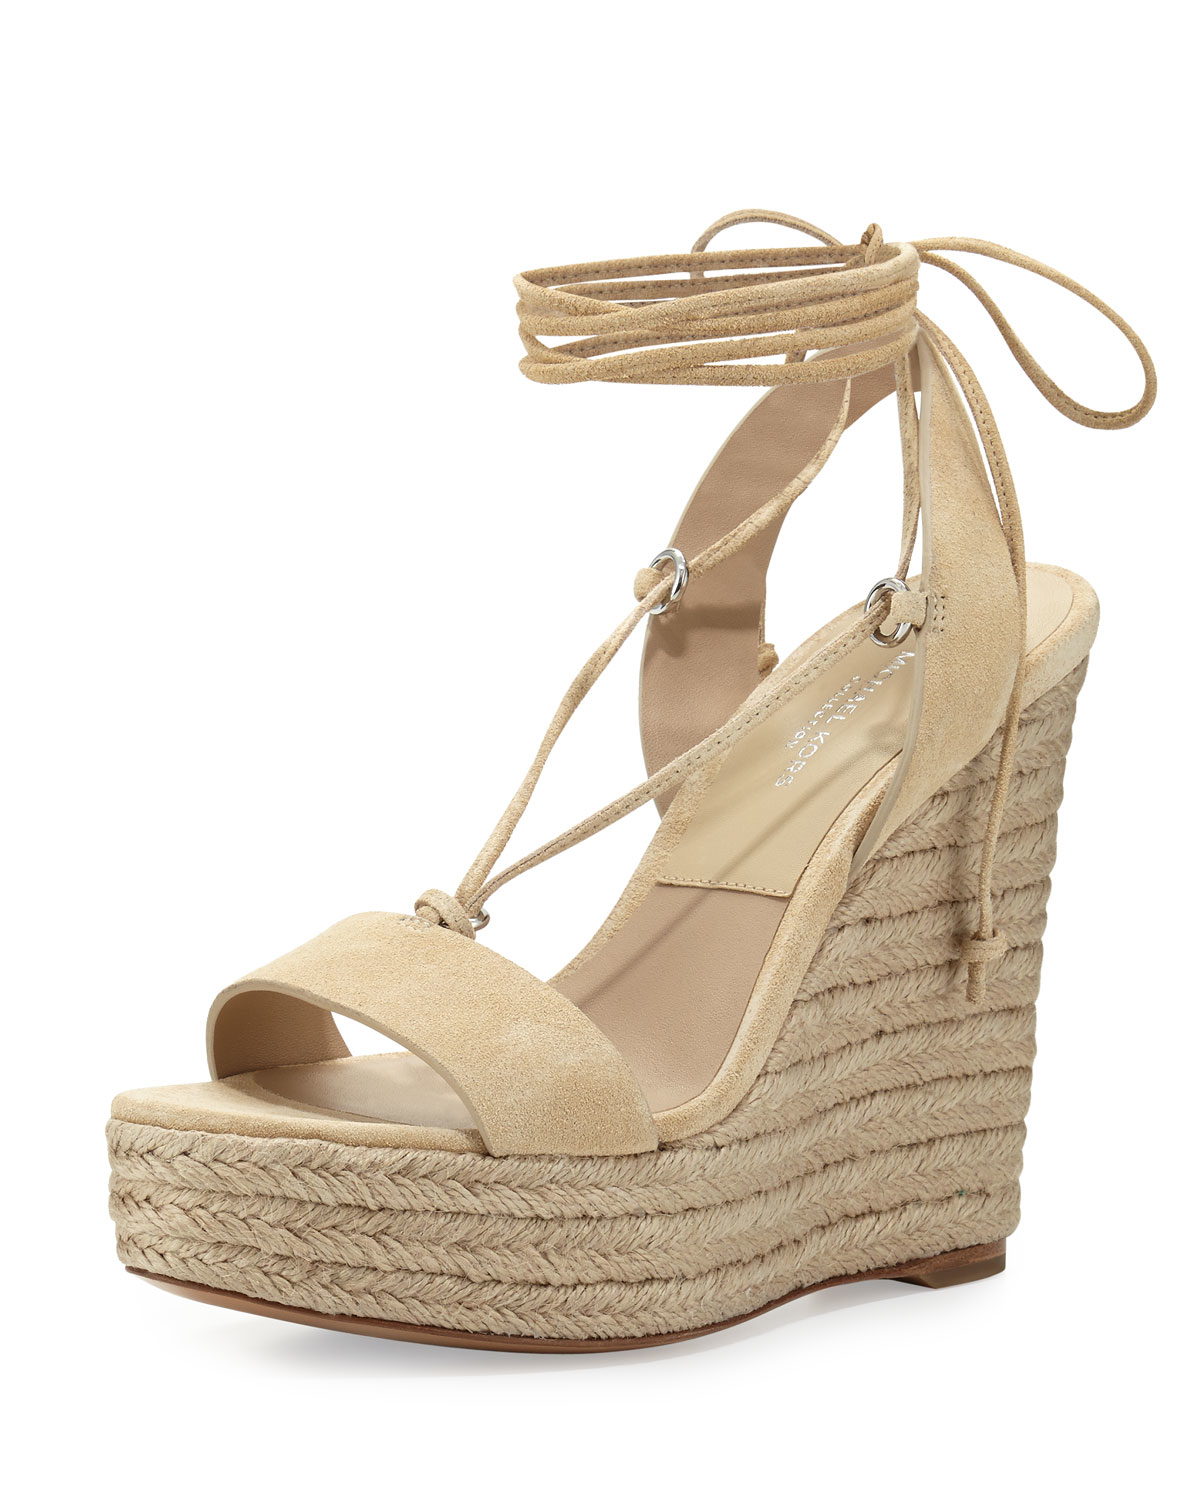 michael kors clive suede lace up wedge espadrille sandal